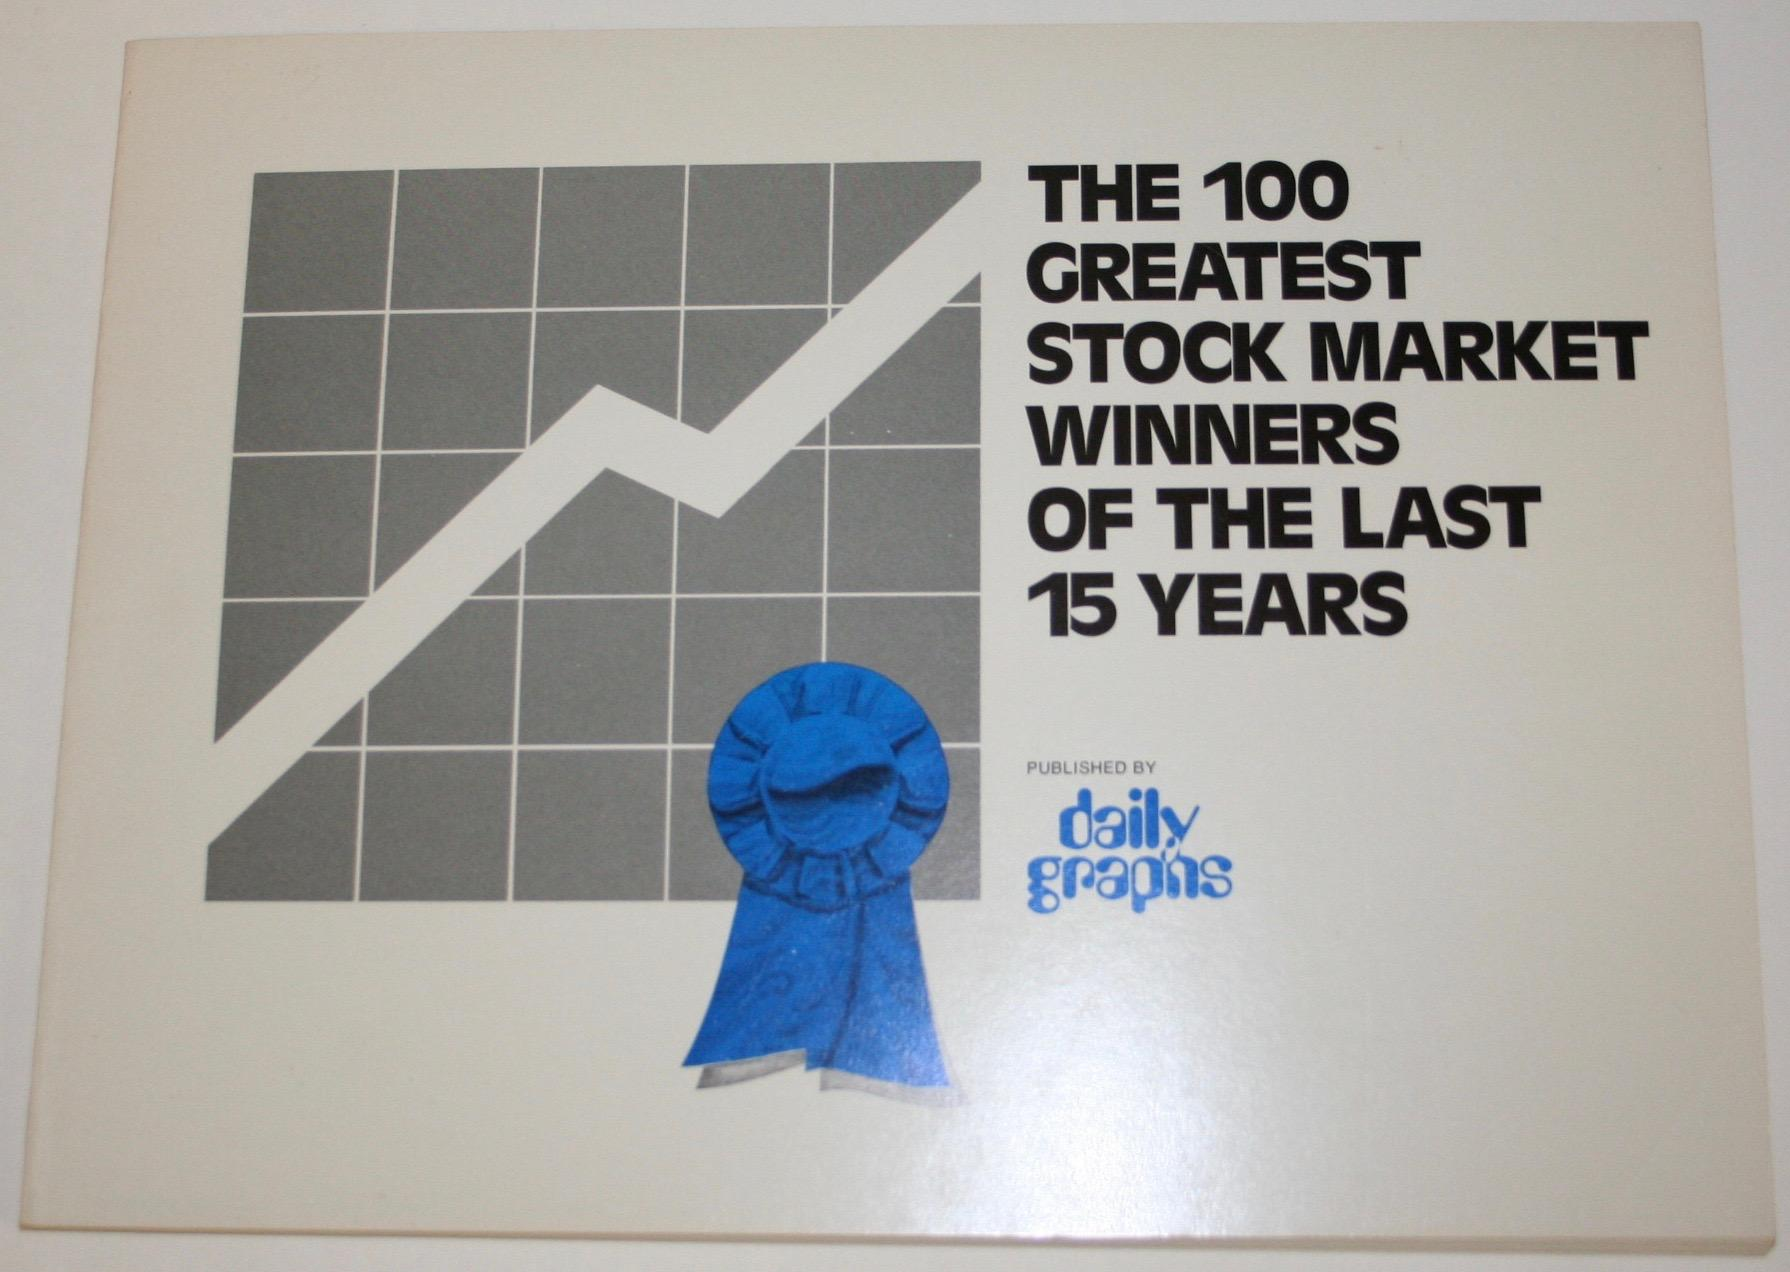 The 100 Greatest Stock Market Winners of the Last 15 Years: Daily Graphs